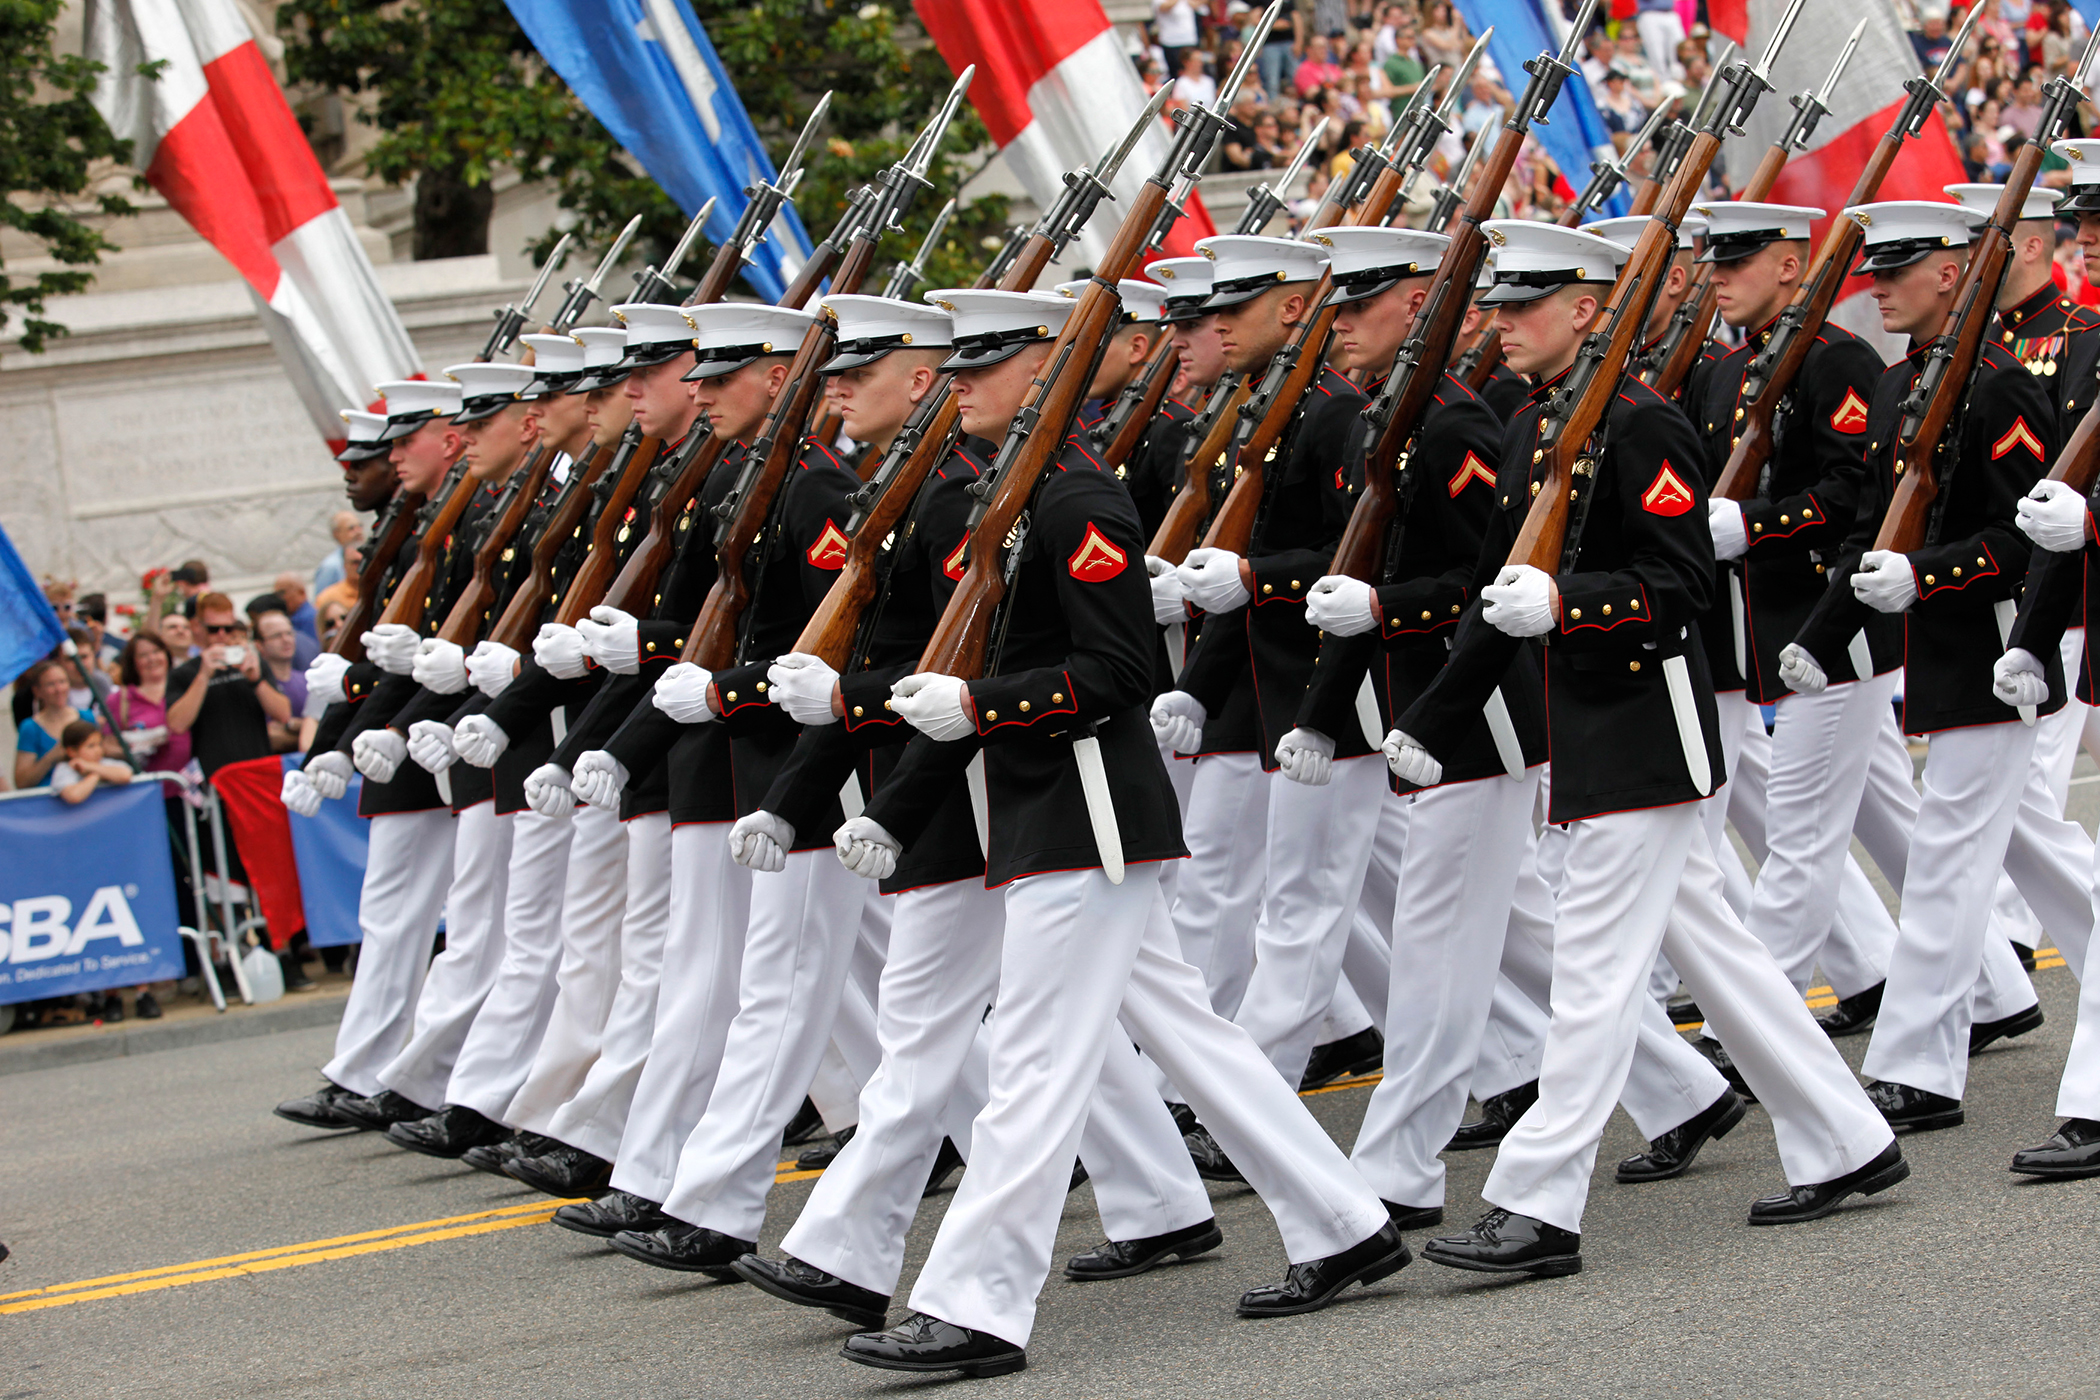 U.S. Marines march during the National Memorial Day Parade on Constitution Avenue in Washington, May 27, 2013.